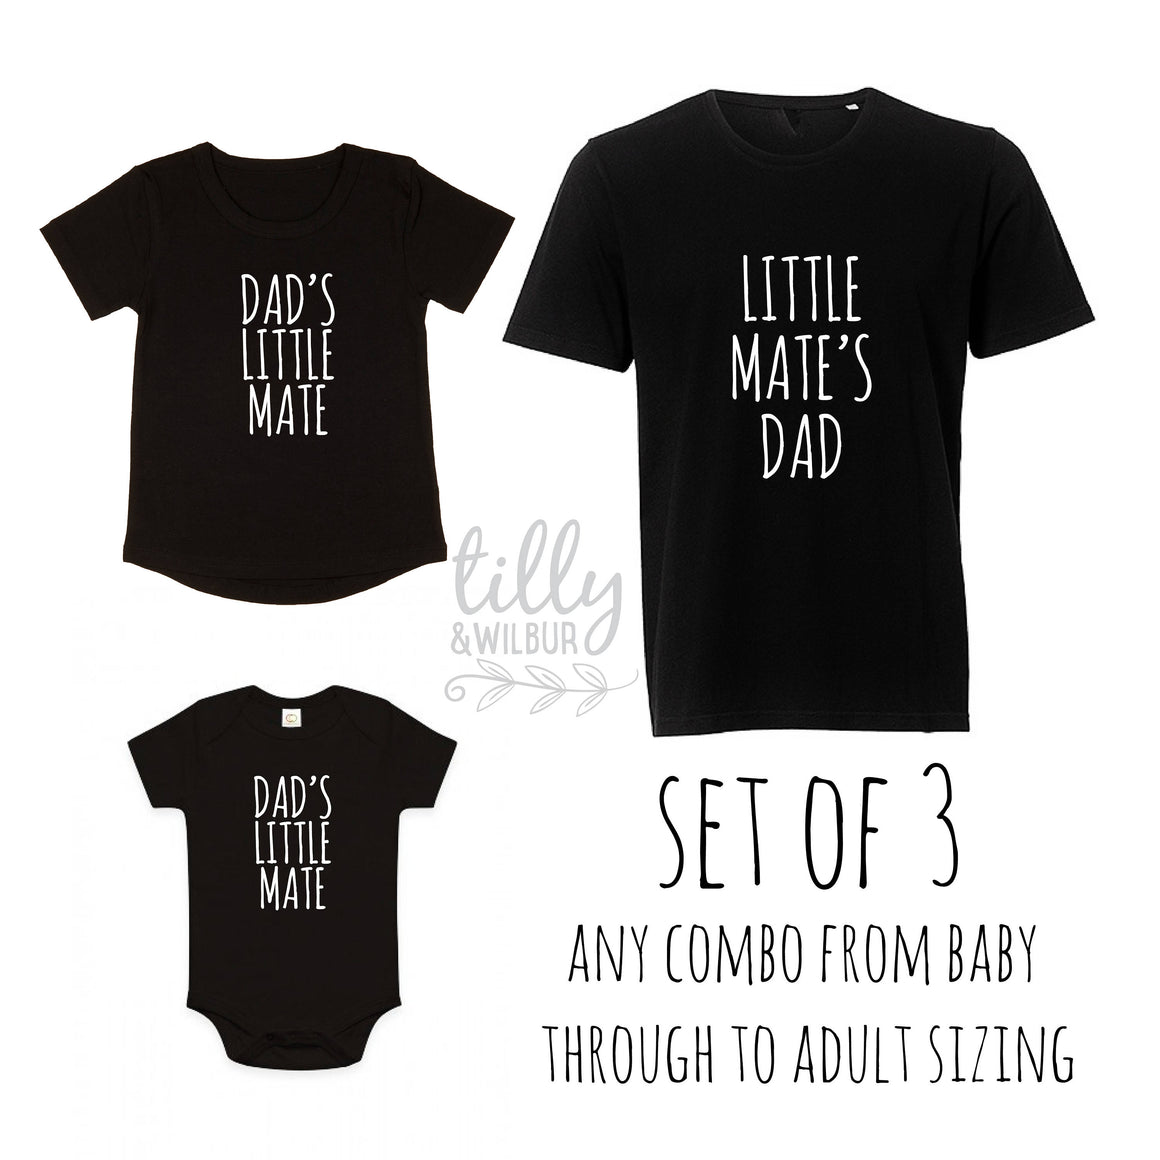 Father's Day Shirts, Father Son Matching Shirts, Dad's Little Mate, Little Mate's Dad, Matching Daddy Baby Outfits, First 1st Father's Day